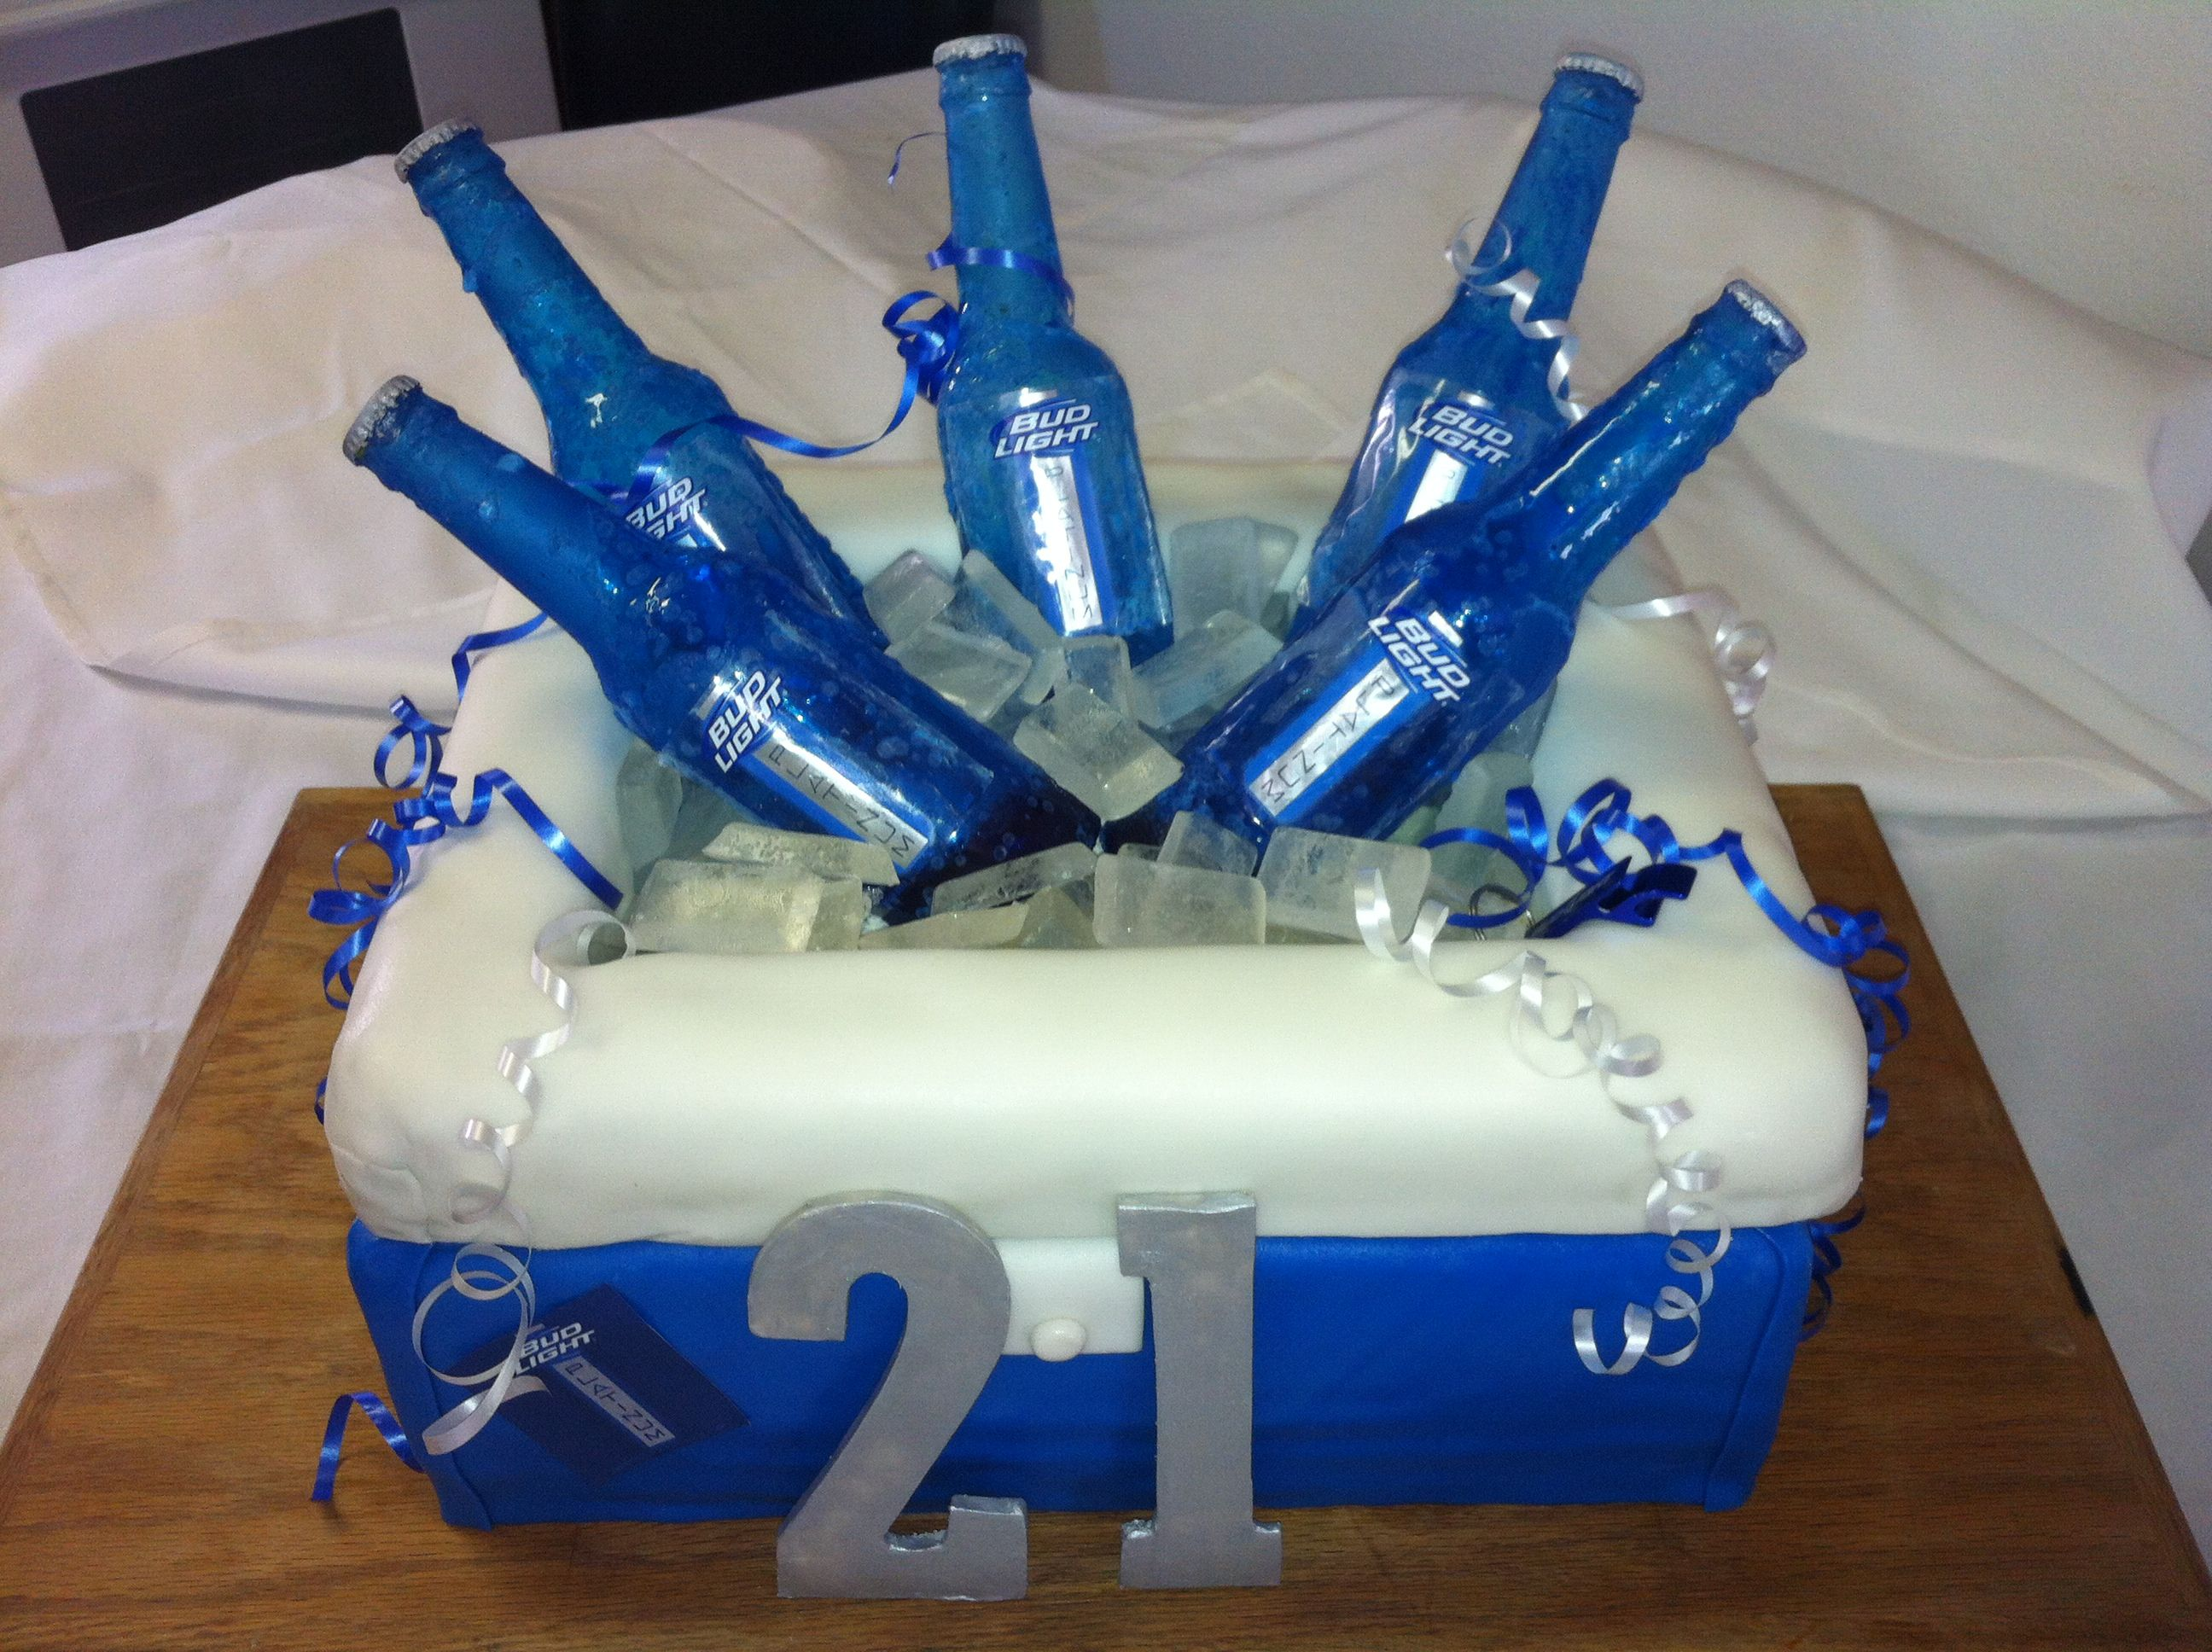 21st Birthday Cake Bud Light Platinum For My Pj My Cakes